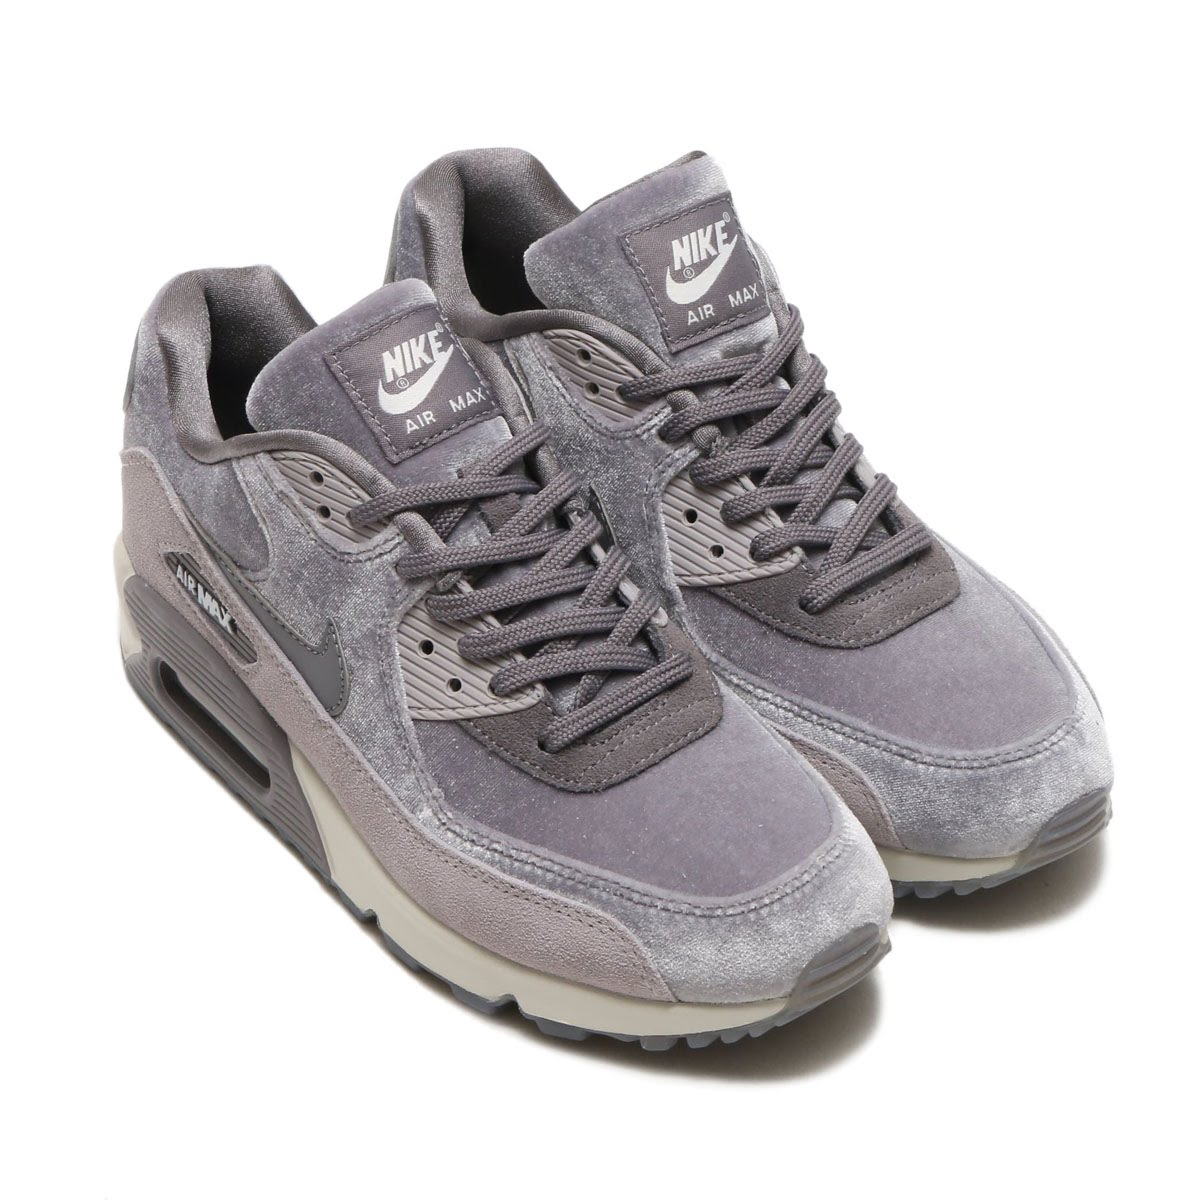 separation shoes 2d36b a373a  This product is a product impossible of cancellation. As you cannot accept  returned goods, the exchange after cancellation, the resize after the order  and ...